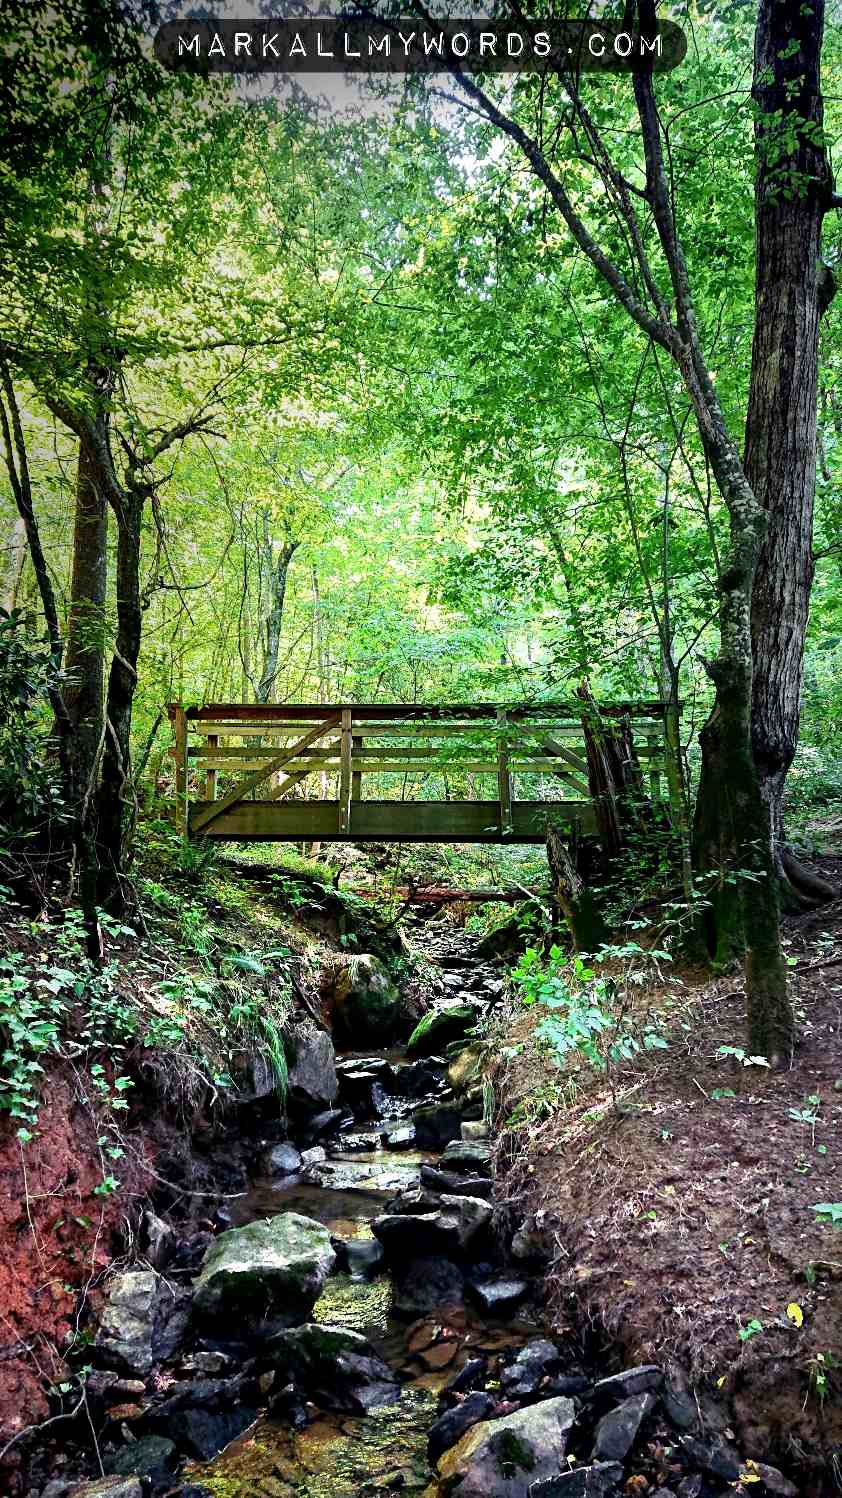 Wooden footbridge over stony creek in forest